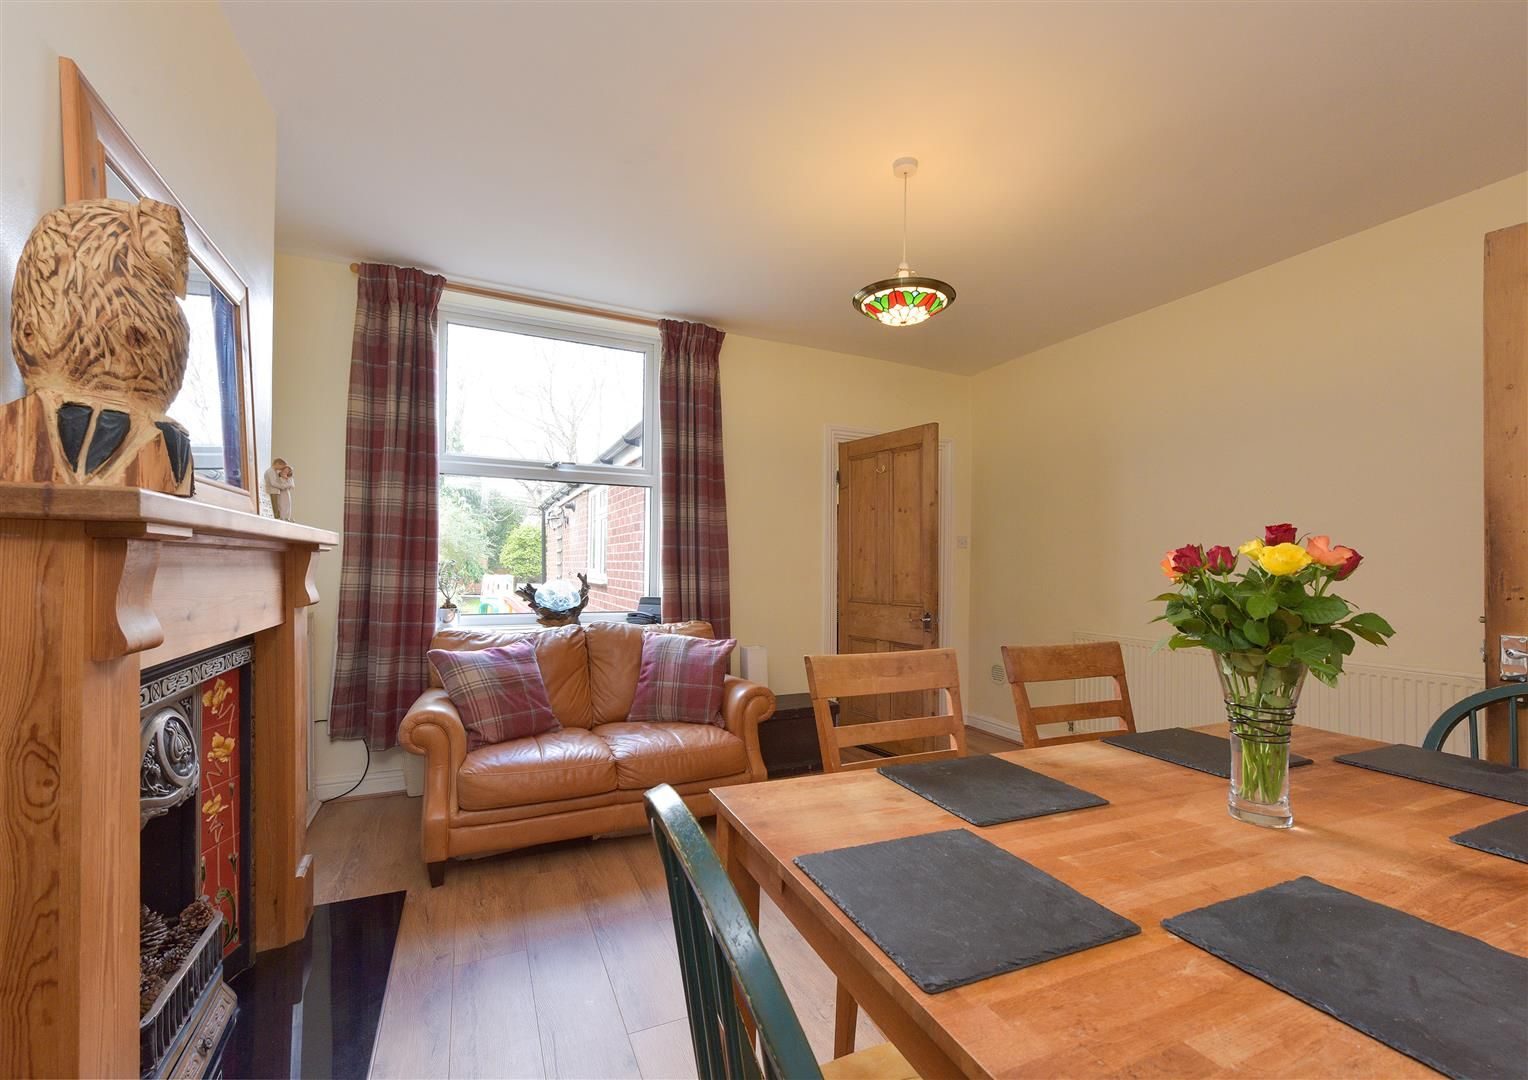 3 bed end-of-terrace for sale  - Property Image 7